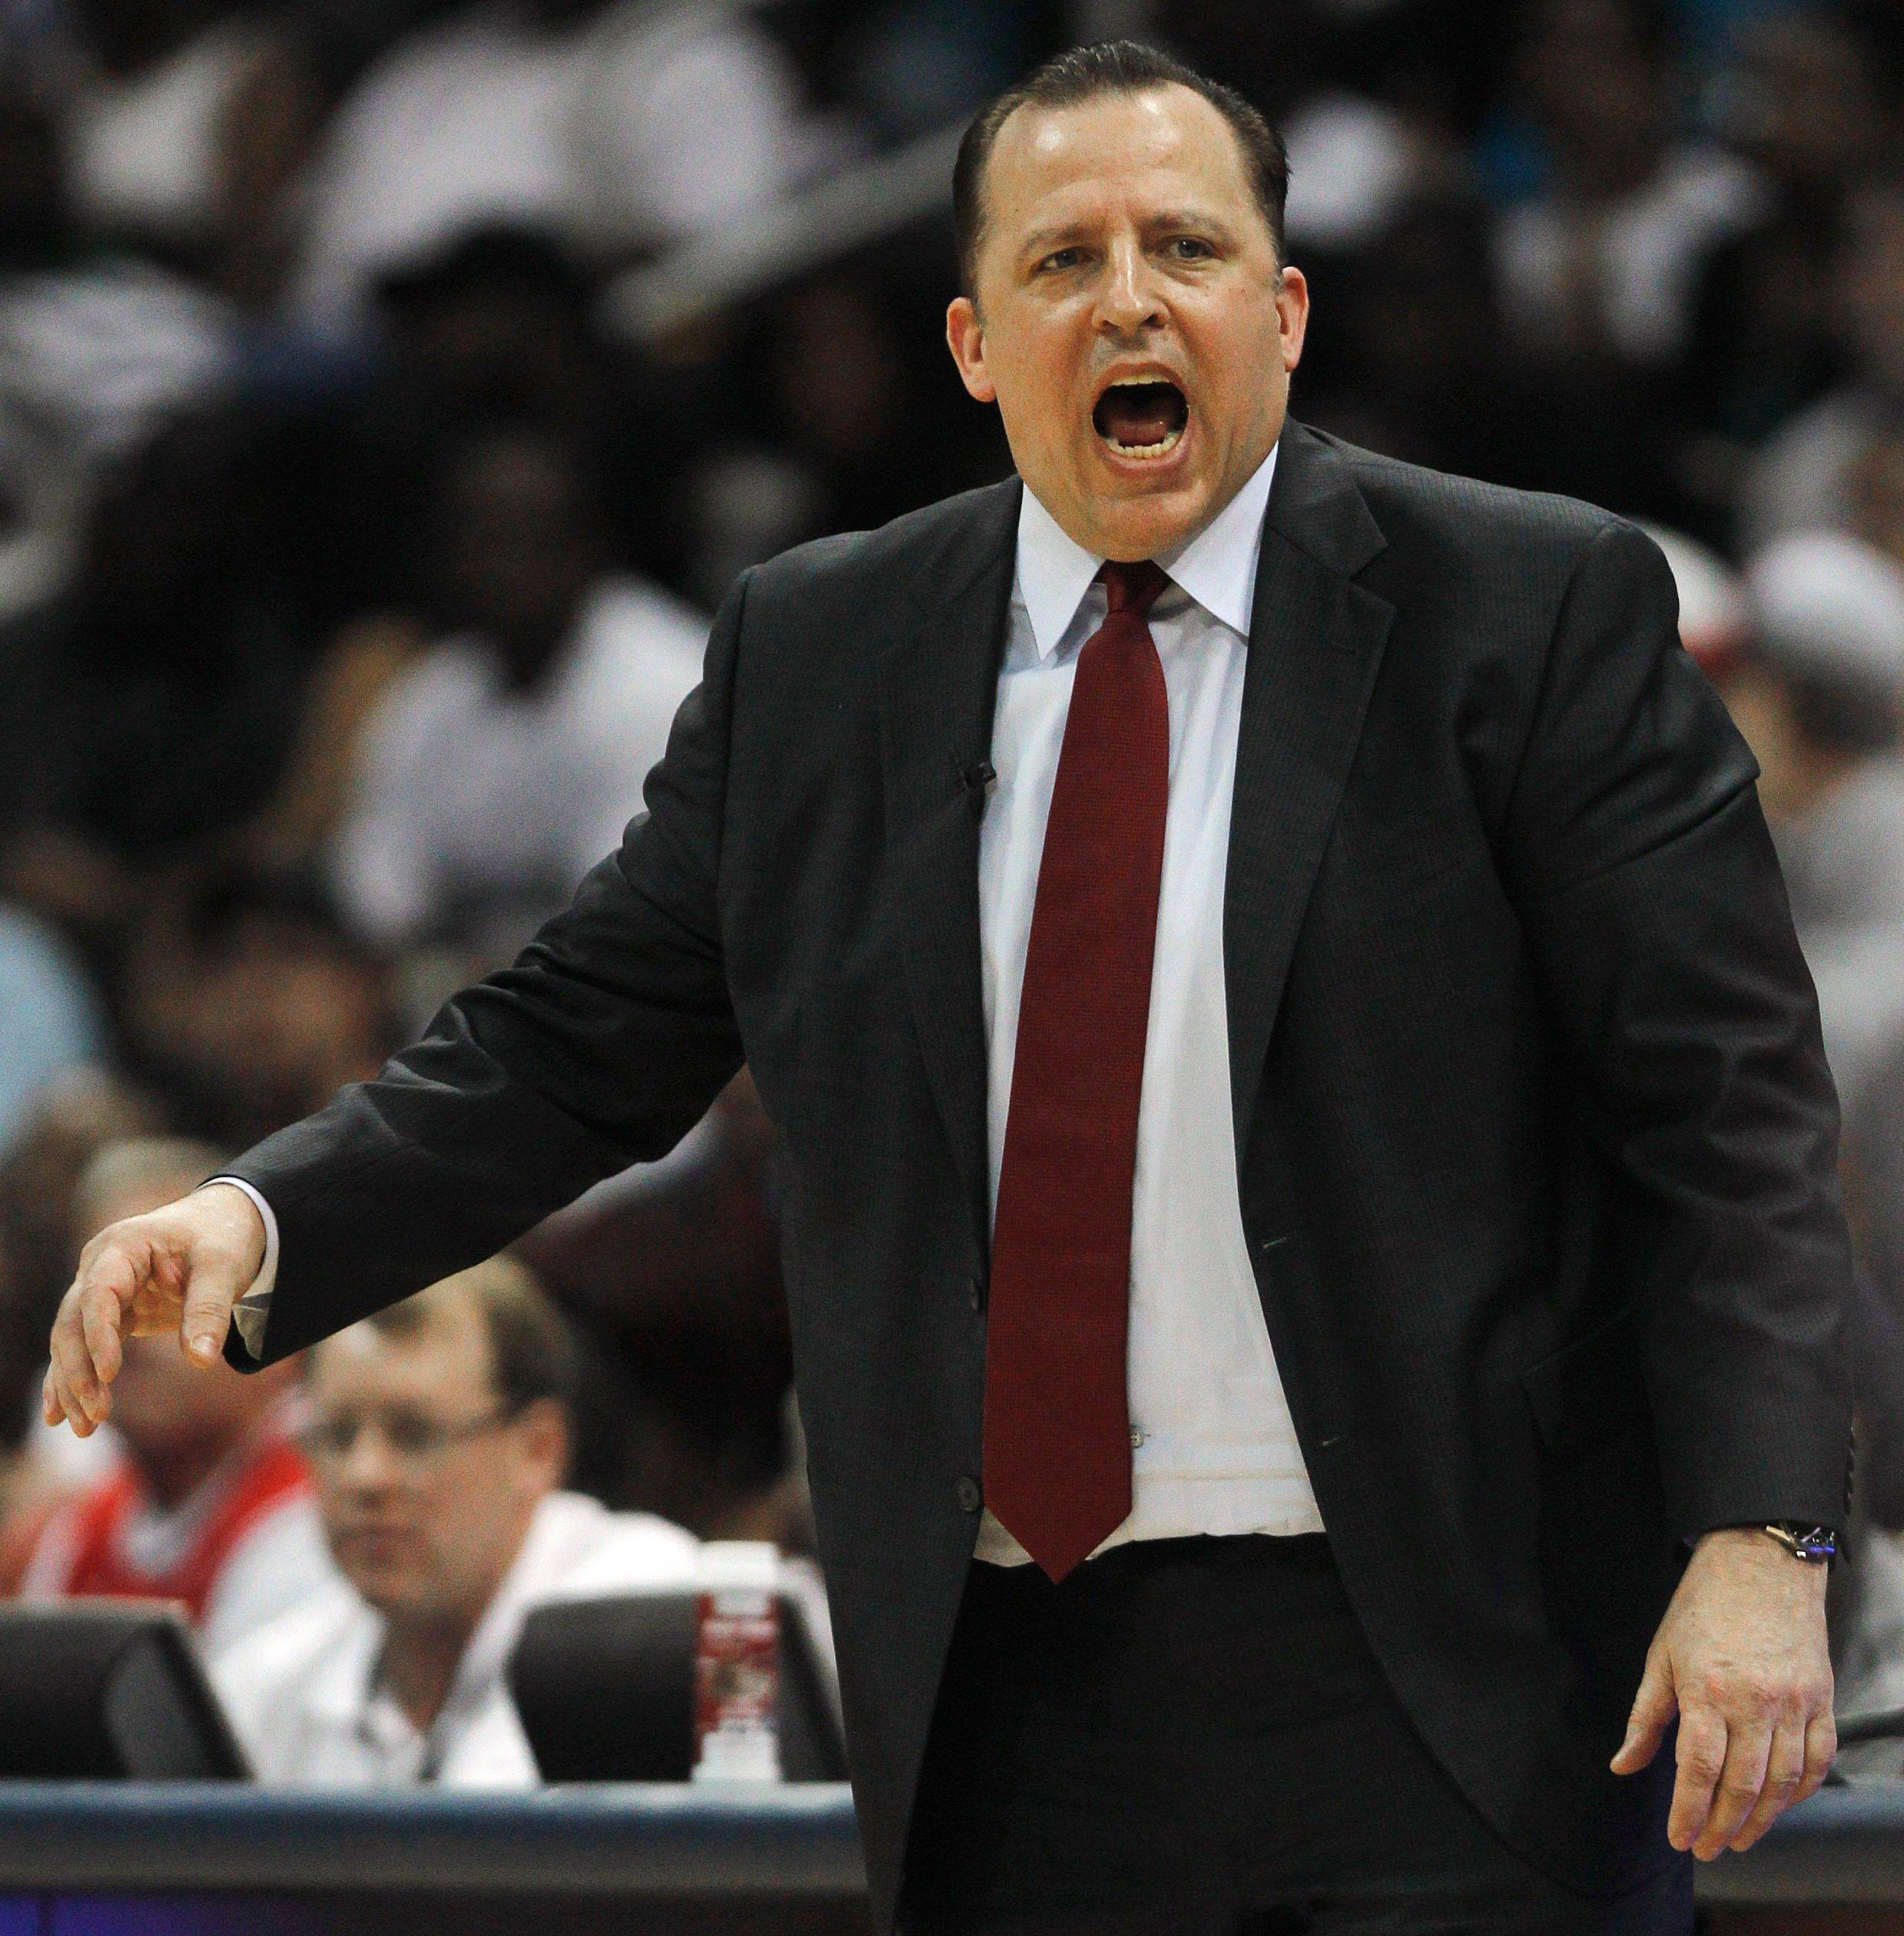 Chicago Bulls head coach Tom Thibodeau speaks to players in the second quarter.